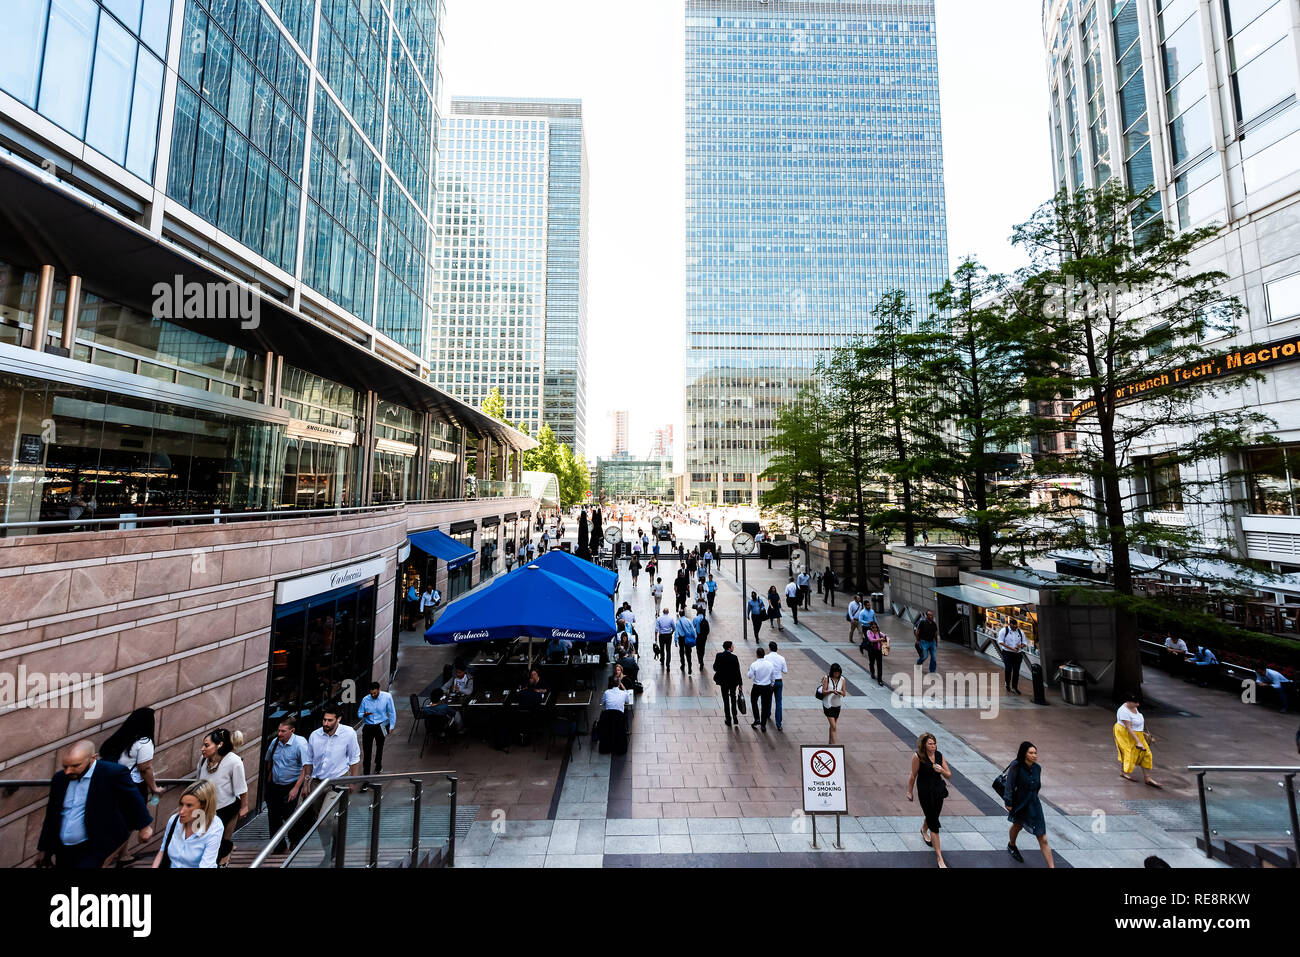 London, UK - June 26, 2018: People crowd commuters outside during morning commute rush hour in Canary Wharf Docklands with modern architecture clocks  - Stock Image